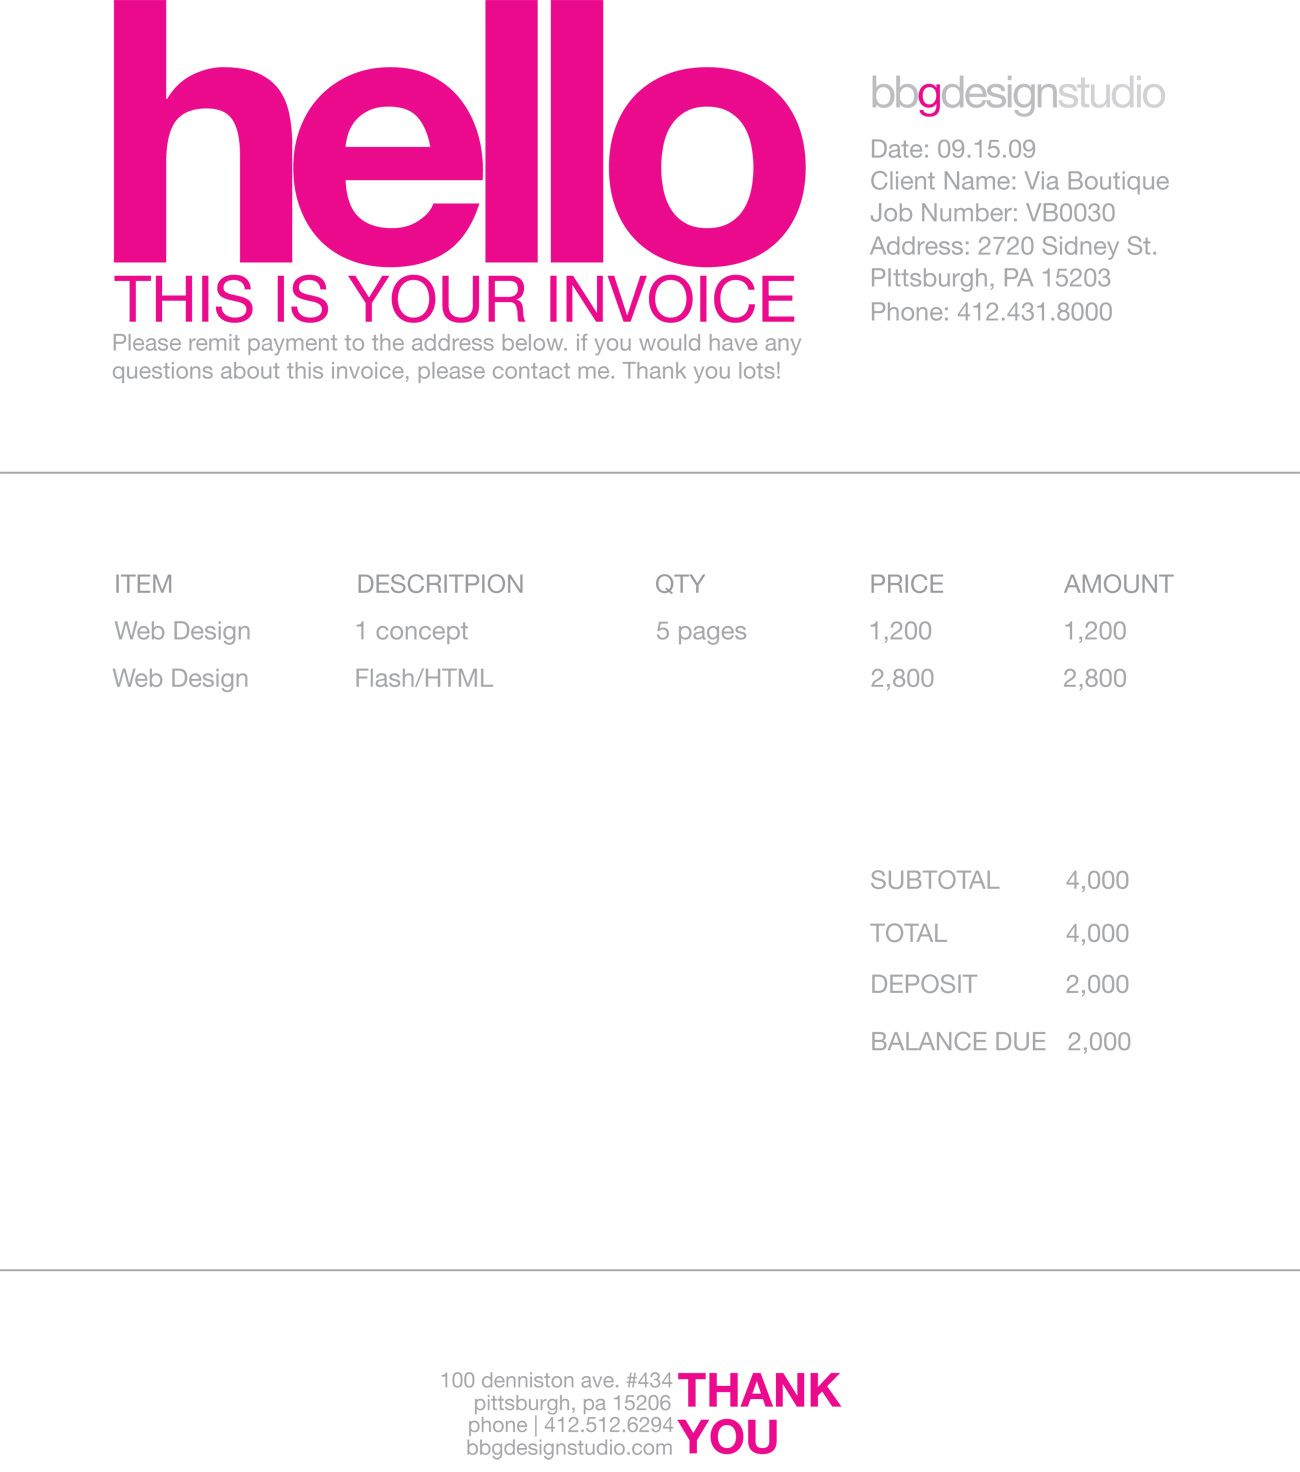 Hius  Nice  Images About Invoice Design On Pinterest With Great Invoice What Does It Mean Besides True Invoice Price For Cars Furthermore Invoice Filing System With Appealing Amazon Invoice Address Also Doc Invoice Template In Addition Free Cloud Invoicing And Excel Sales Invoice Template As Well As Invoice Discounting Jobs Additionally Billing Invoice Template Excel From Pinterestcom With Hius  Great  Images About Invoice Design On Pinterest With Appealing Invoice What Does It Mean Besides True Invoice Price For Cars Furthermore Invoice Filing System And Nice Amazon Invoice Address Also Doc Invoice Template In Addition Free Cloud Invoicing From Pinterestcom